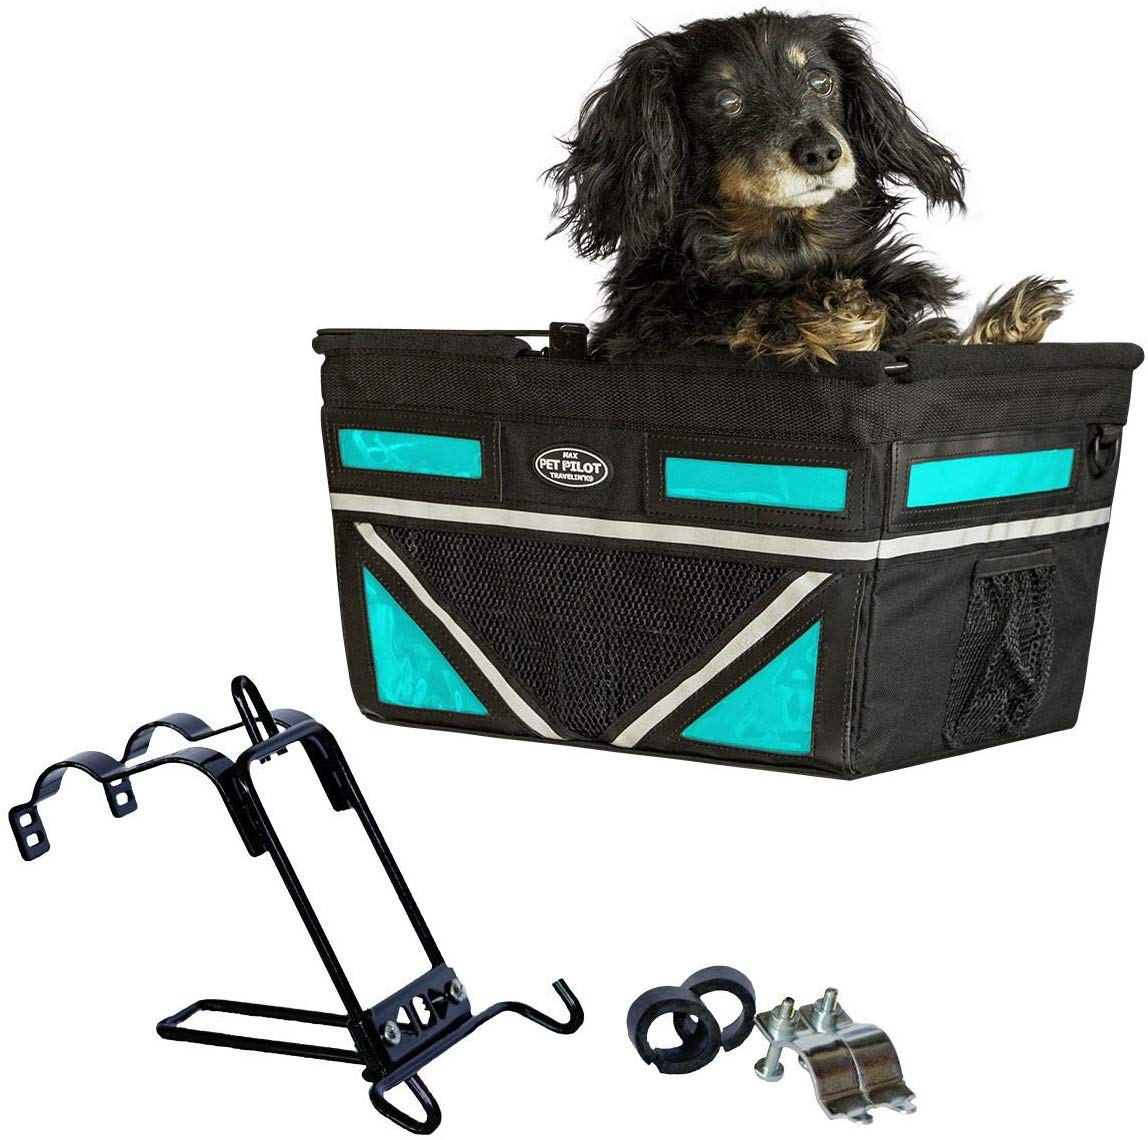 Travelin K9 2019 Pet-Pilot MAX Large Bike Basket for Dogs & Cats, Turquoise